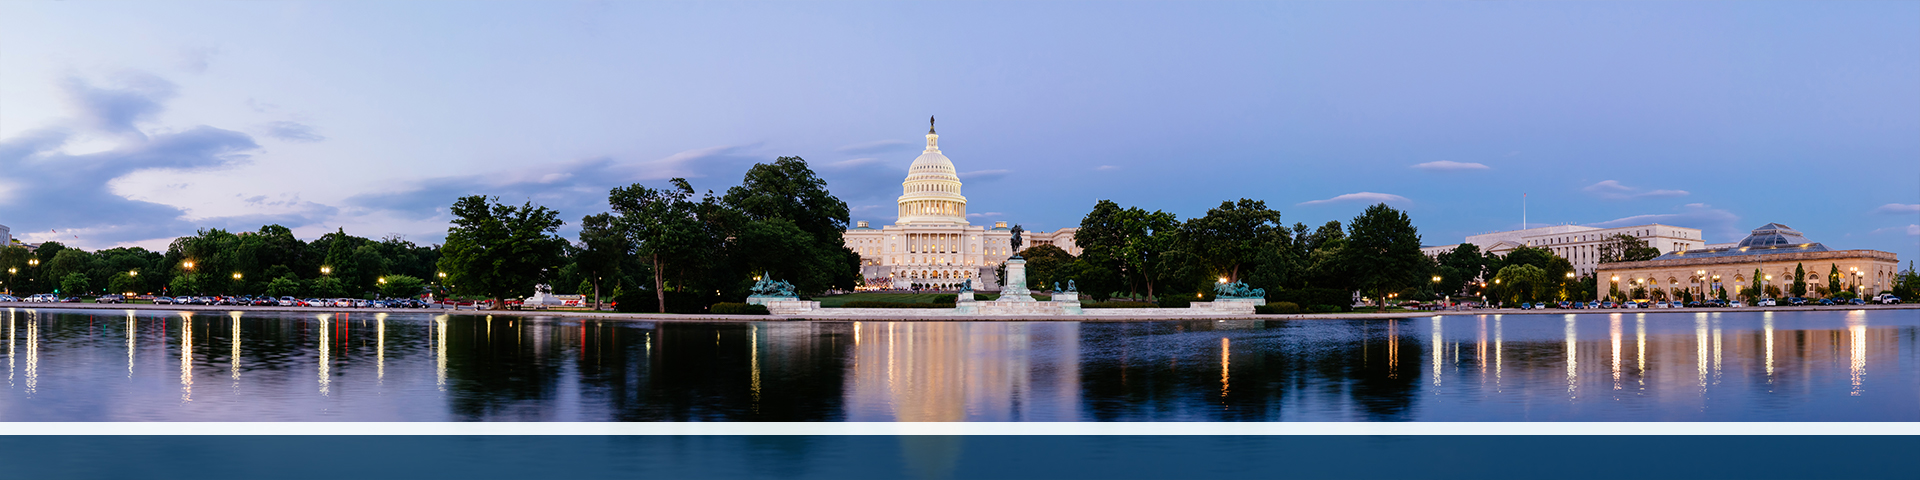 Panorama of the US capitol building from the water